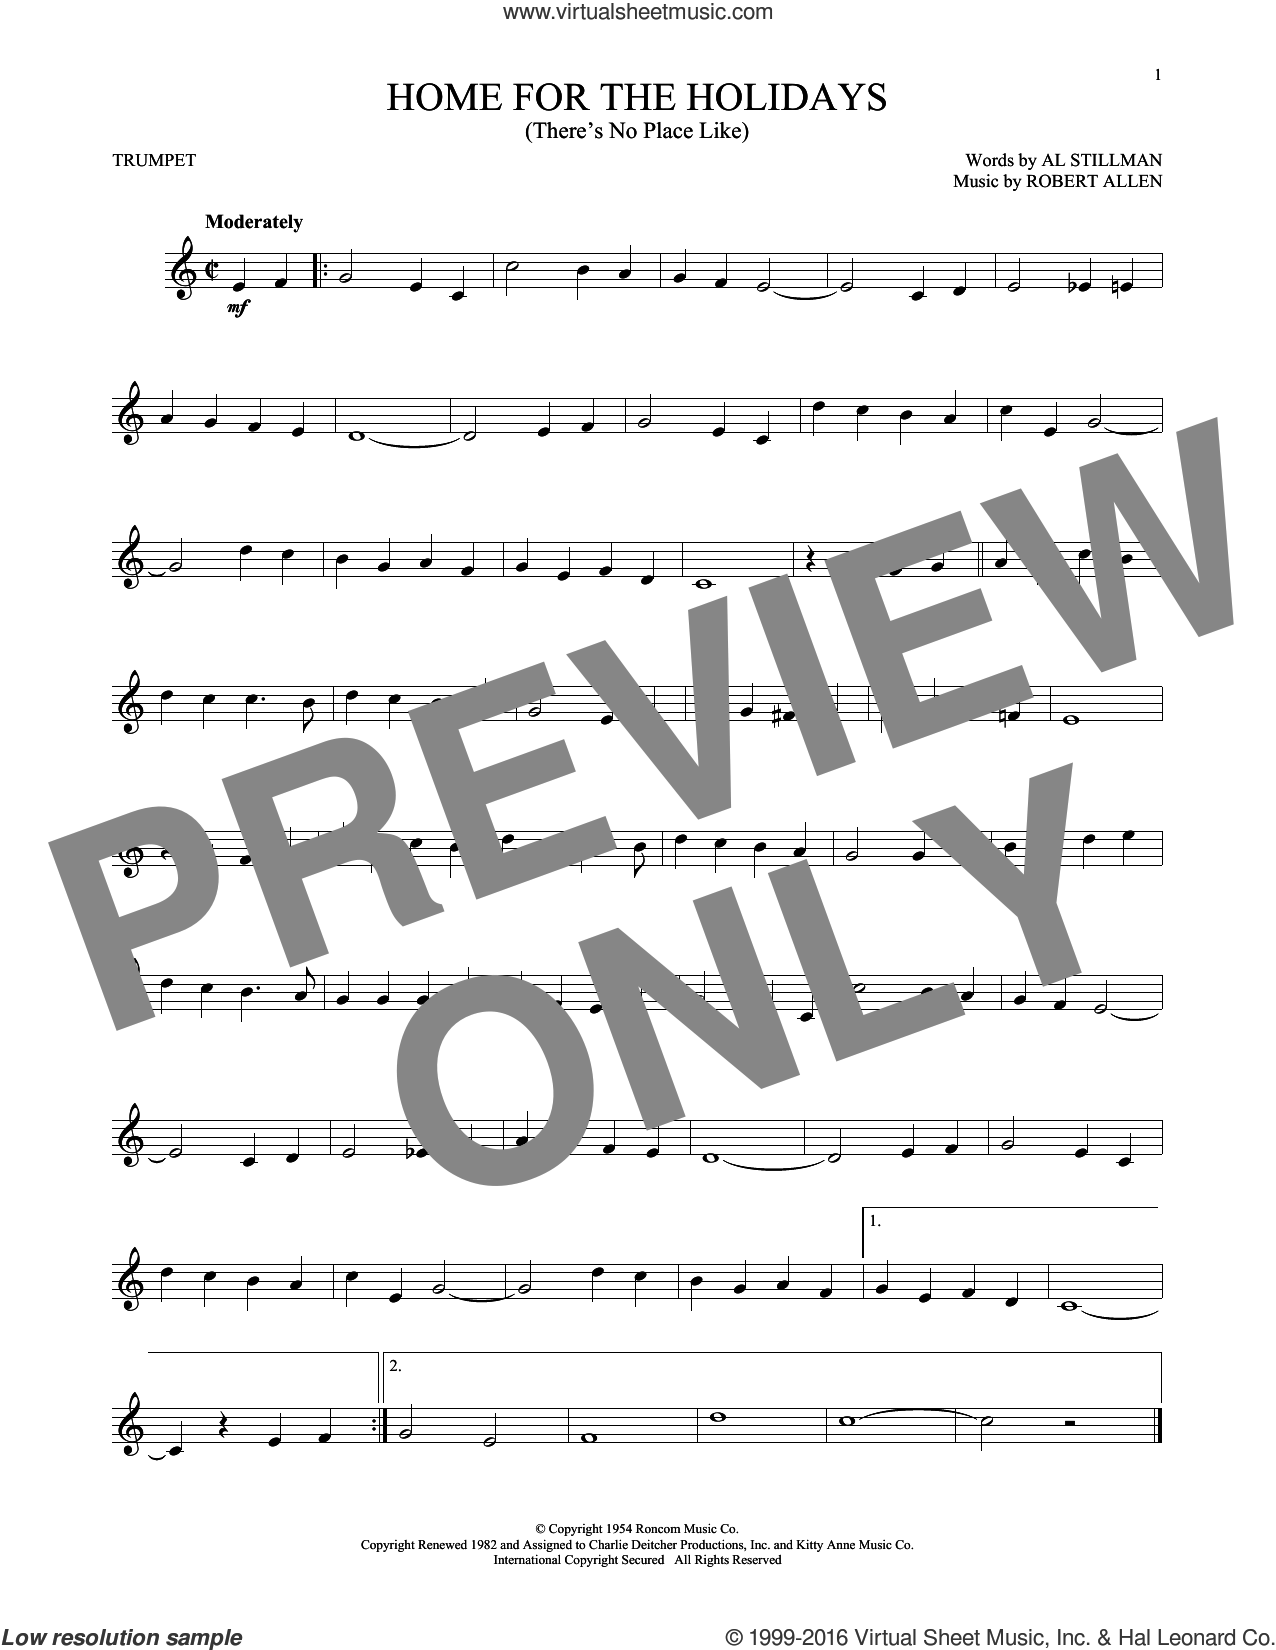 (There's No Place Like) Home For The Holidays sheet music for trumpet solo by Perry Como, Al Stillman and Robert Allen, intermediate skill level